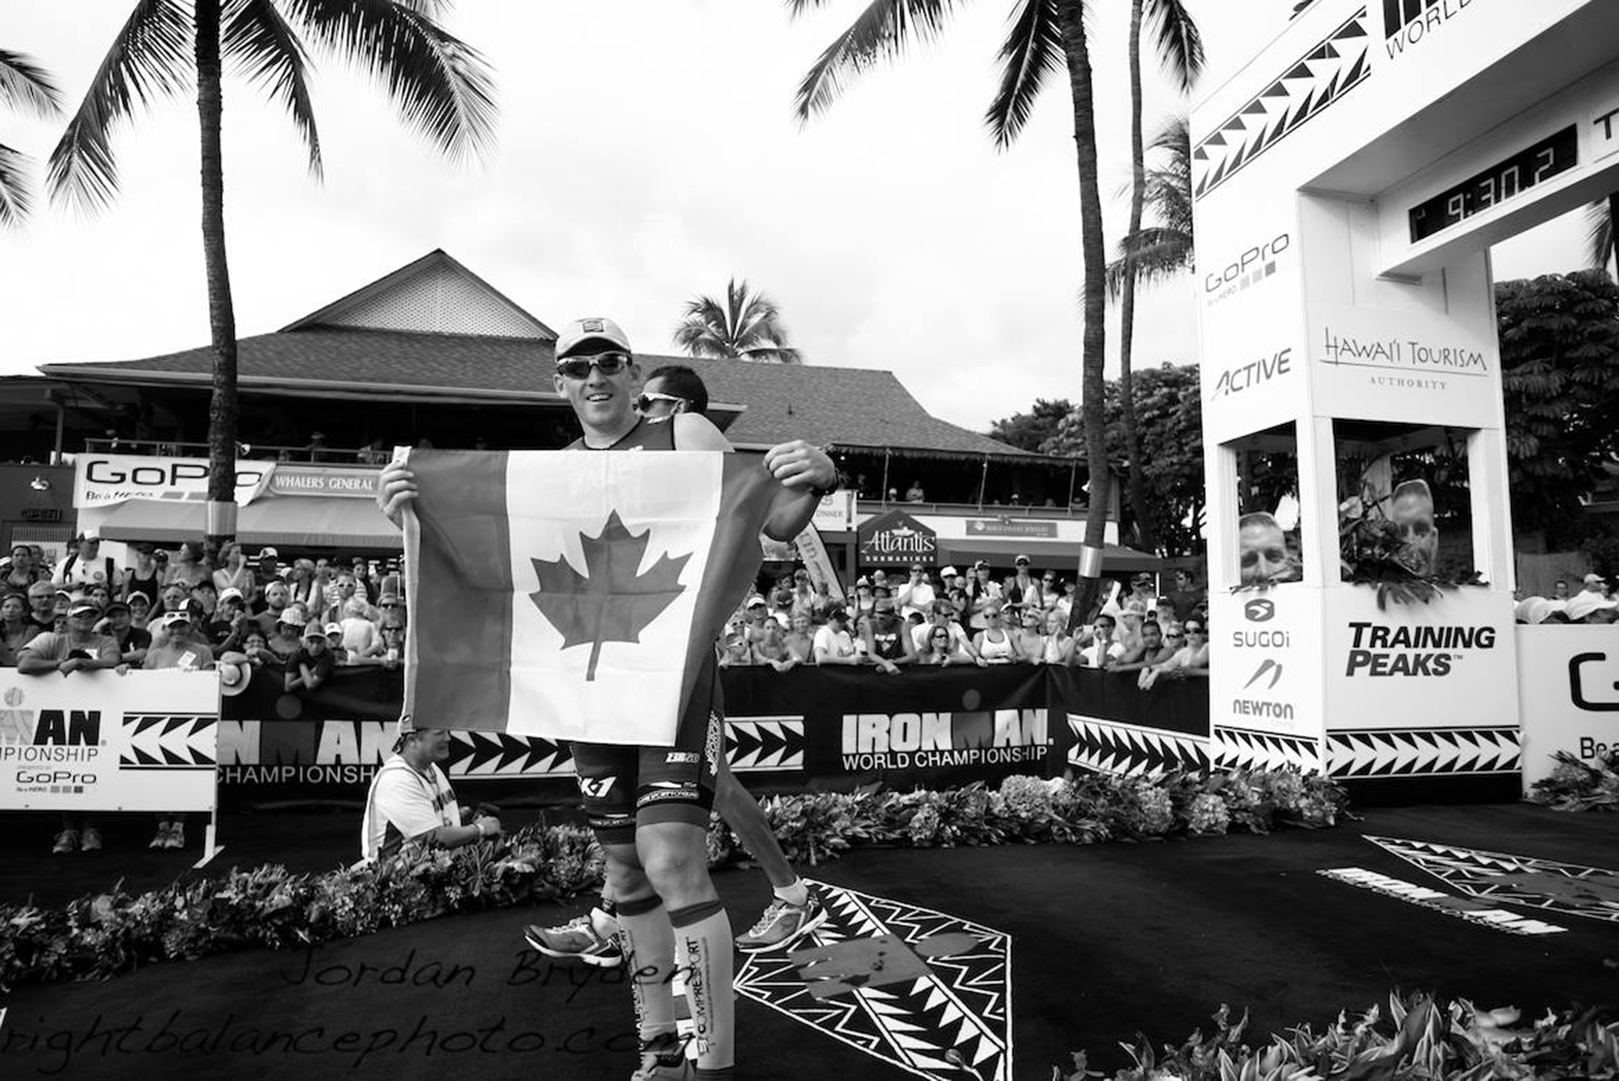 Major Joel Maley finishes Ironman 2014 with the flag in Kailua-Kona, Hawaii, USA.